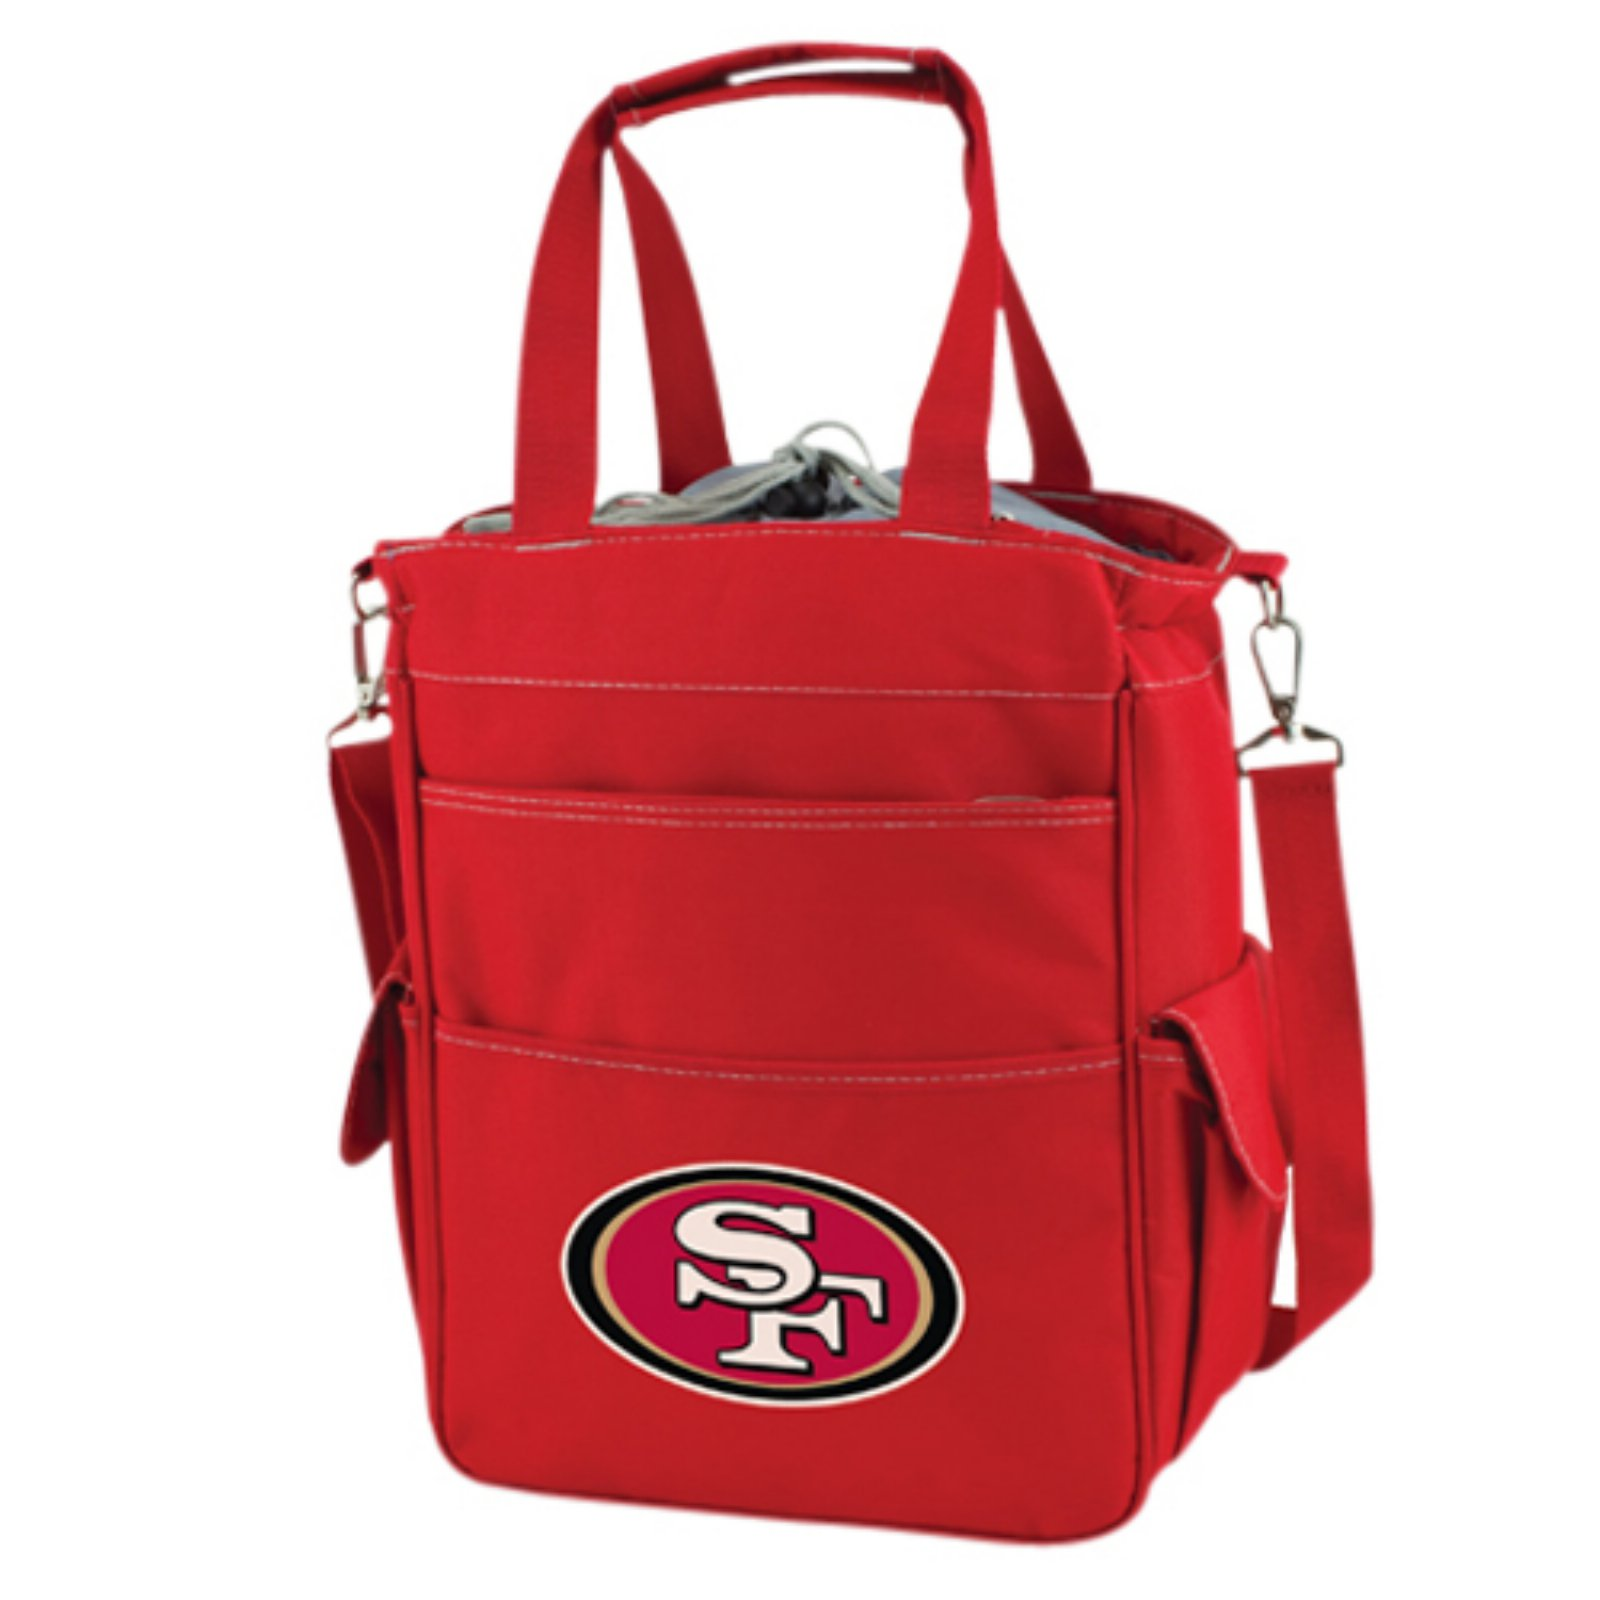 Picnic Time Activo, Black San Francisco 49ers Digital Print